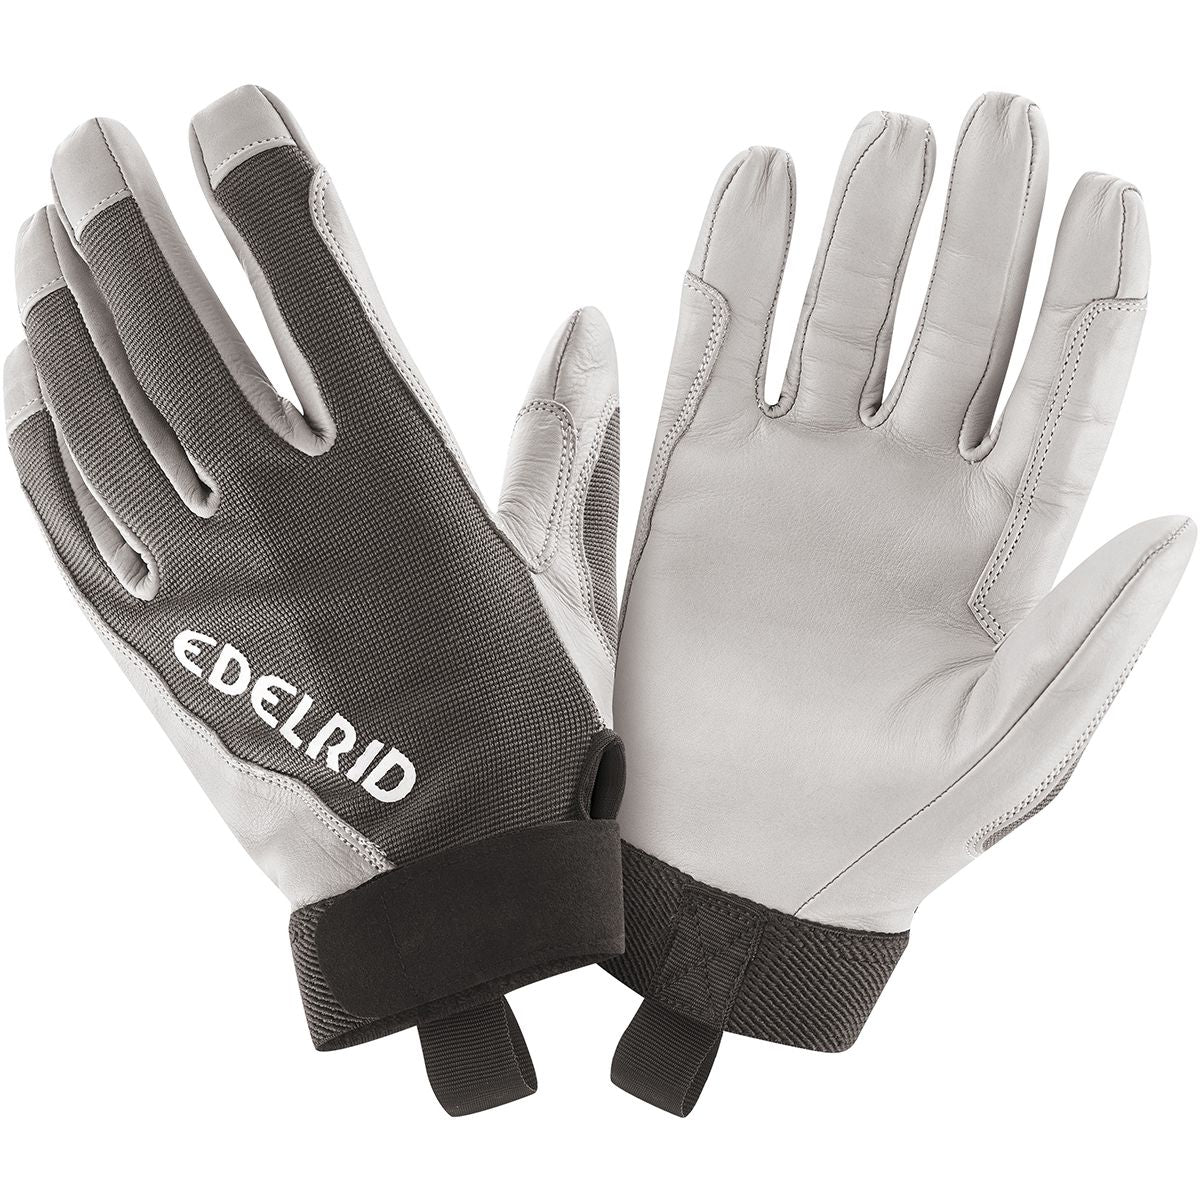 Edelrid Skinny Belay Gloves II